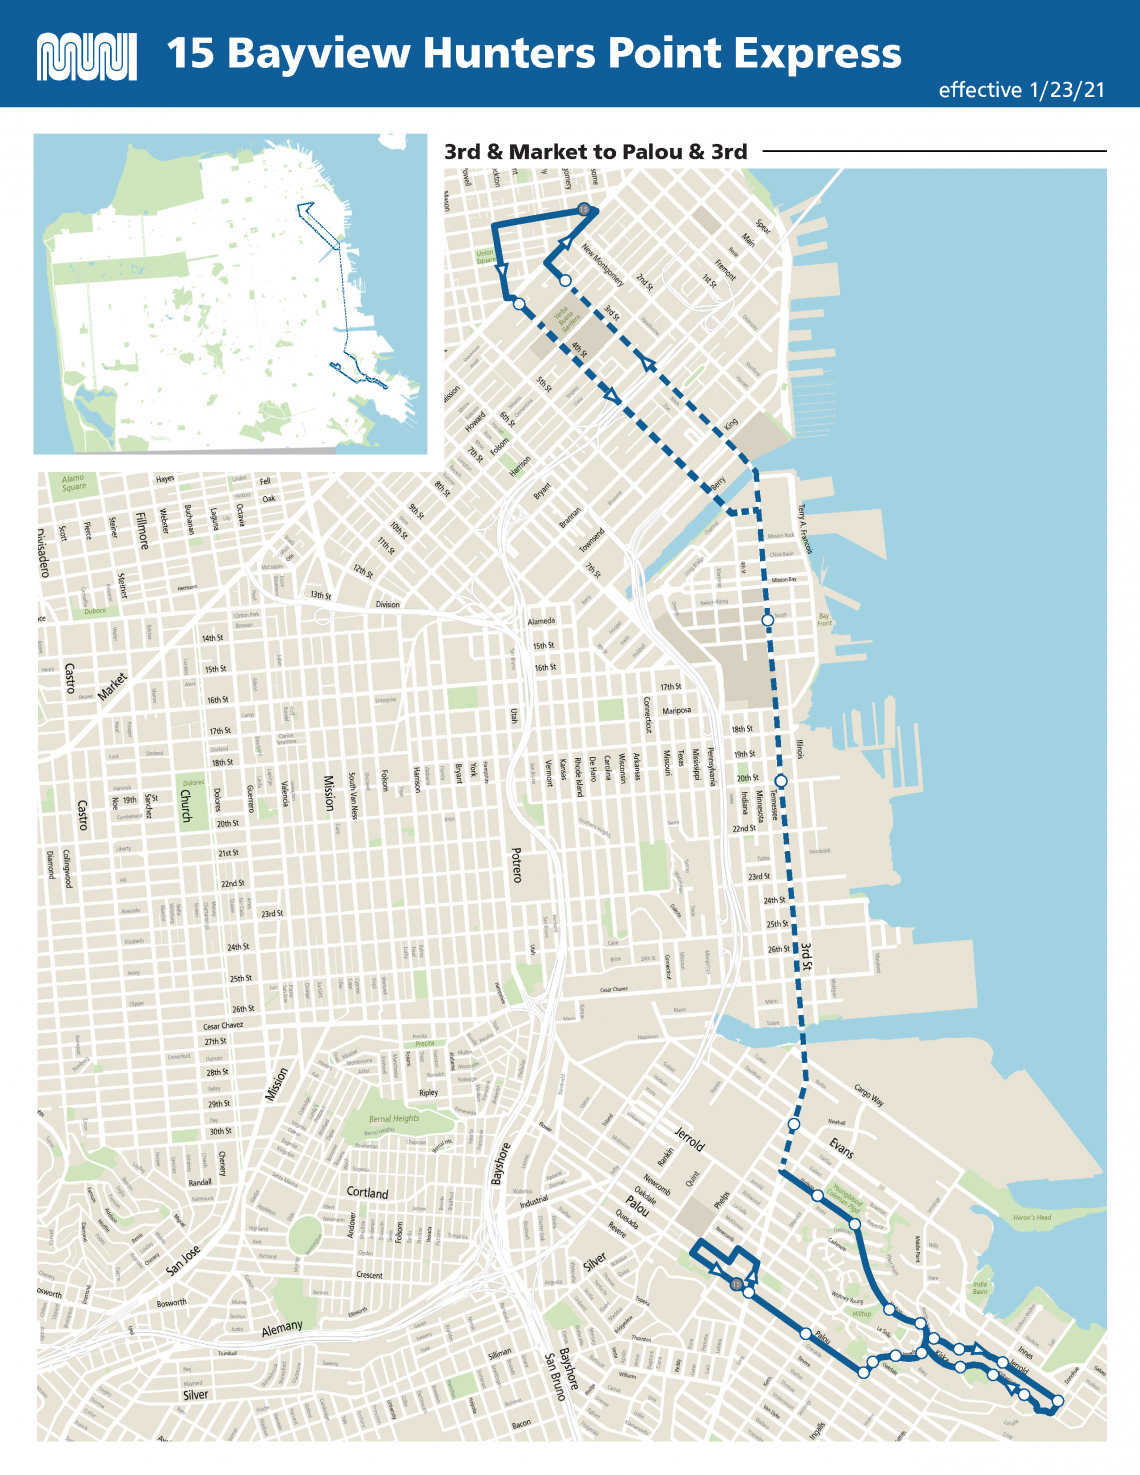 15 Bayview Hunters Point Express Route Map